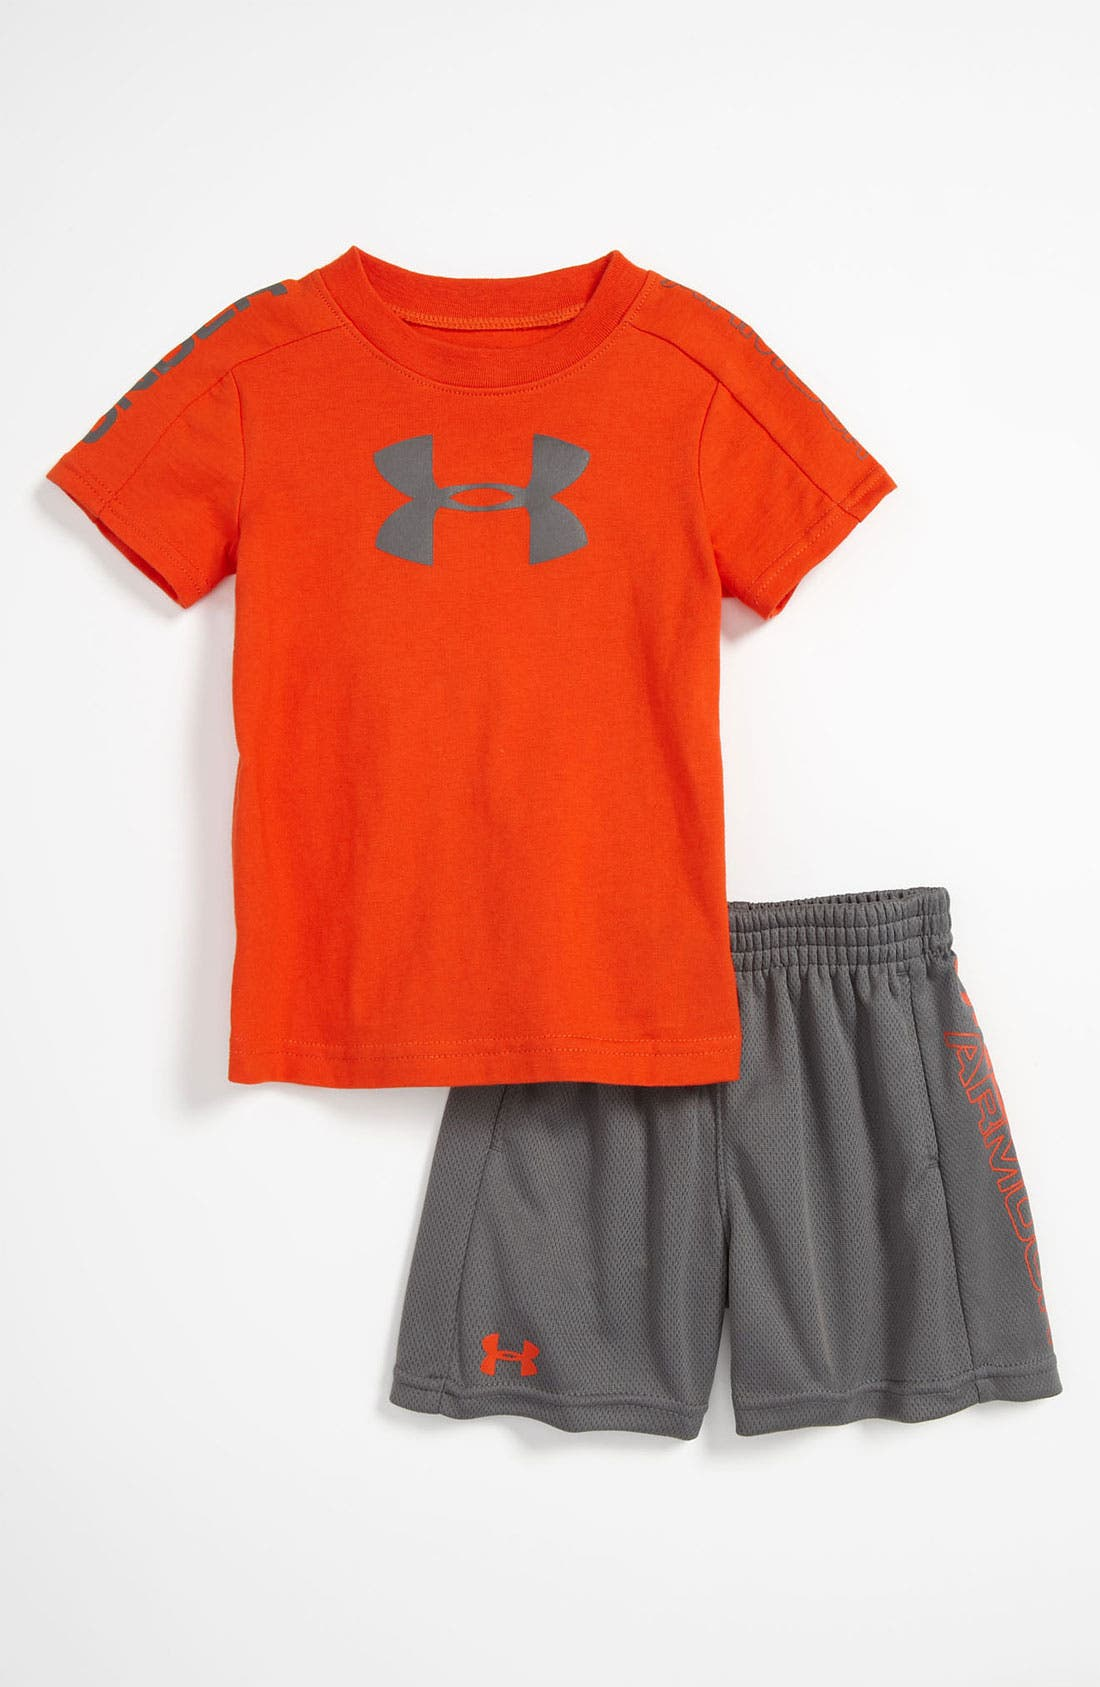 Main Image - Under Armour 'Integrity 2.0' T-Shirt & Shorts (Infant)